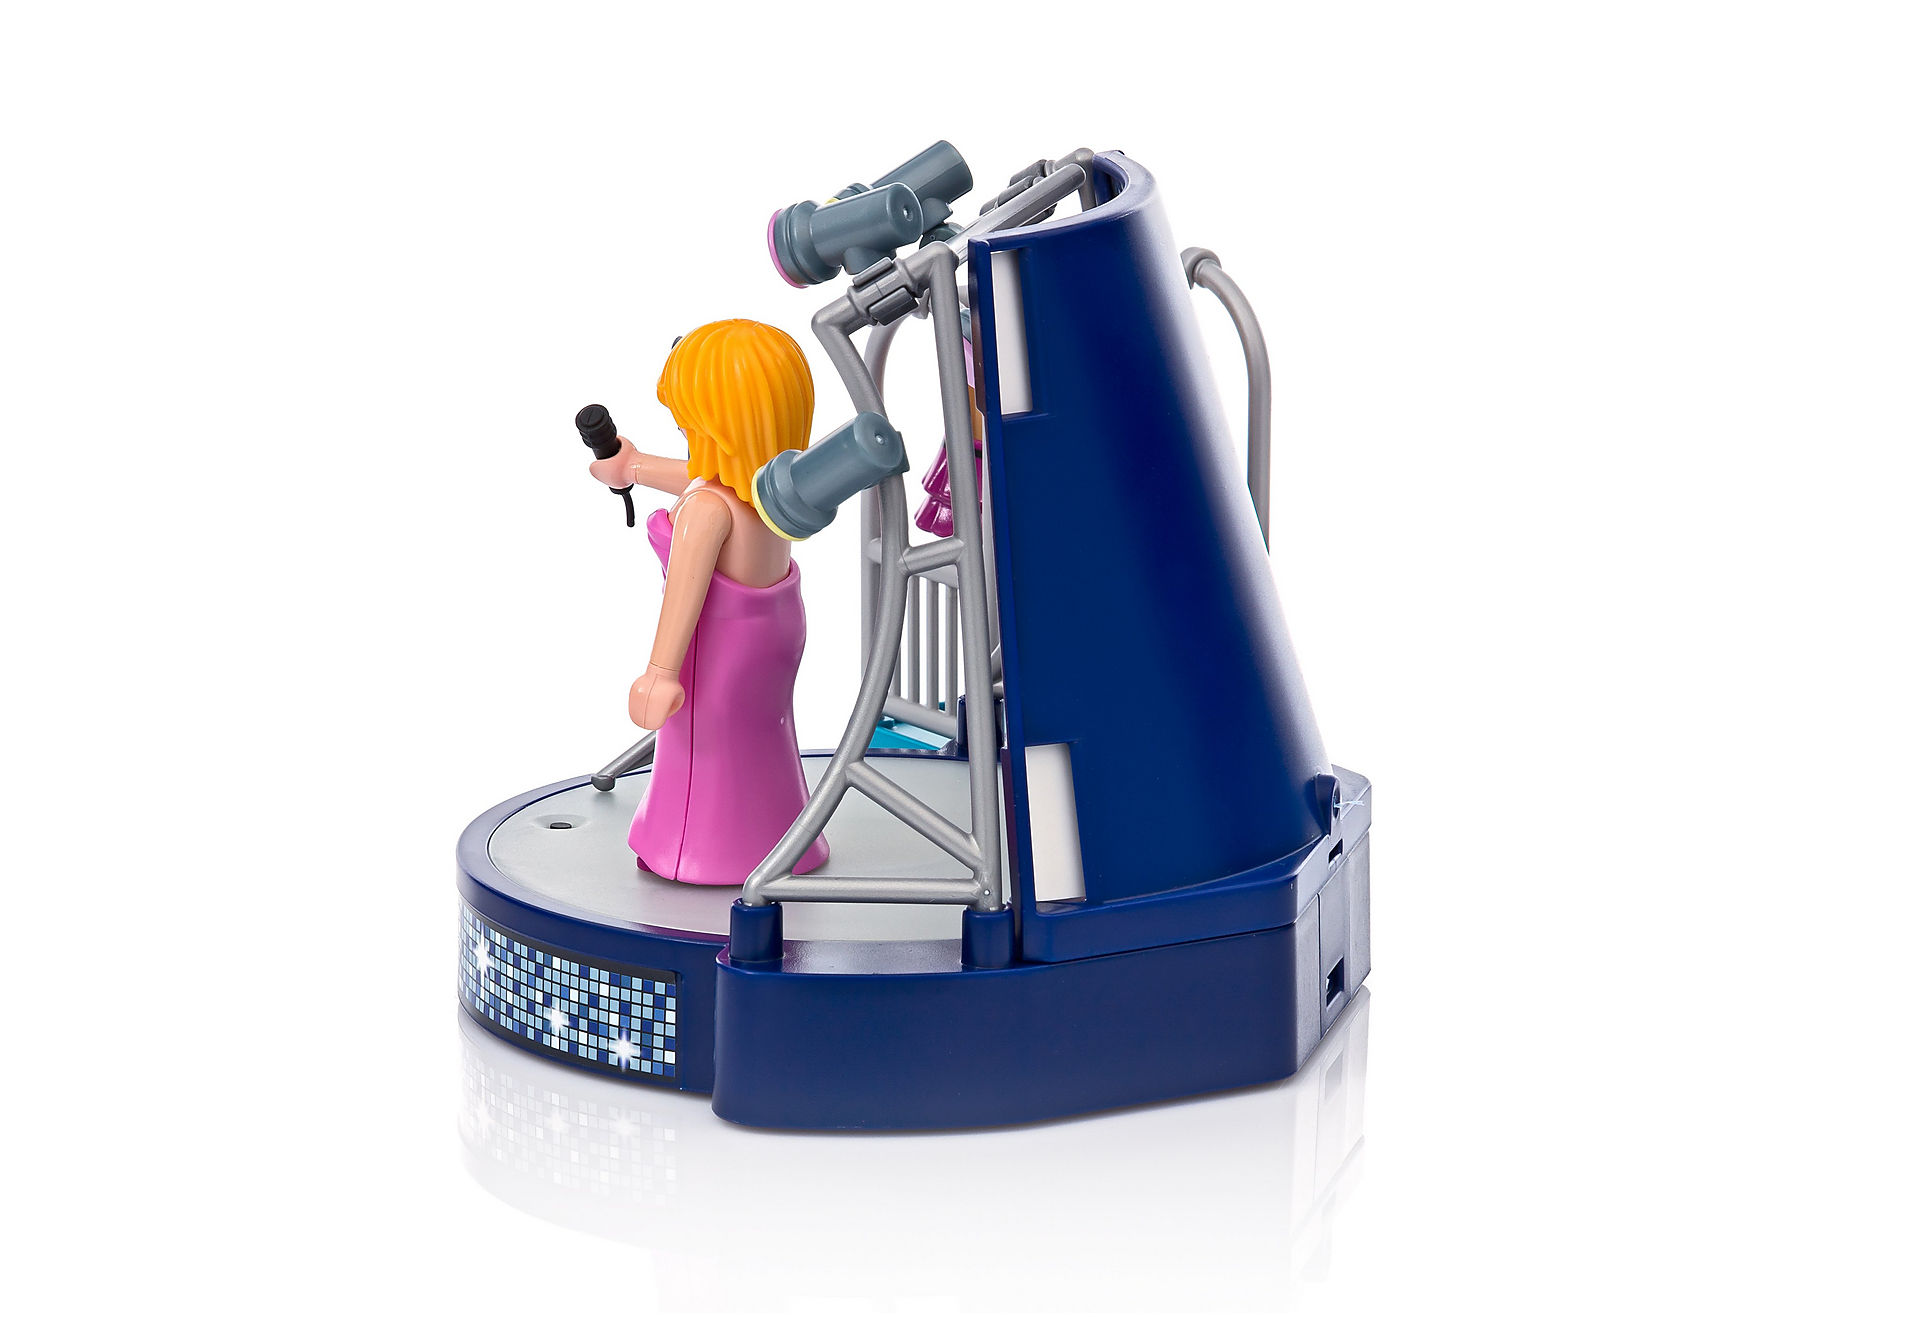 360degree image 13